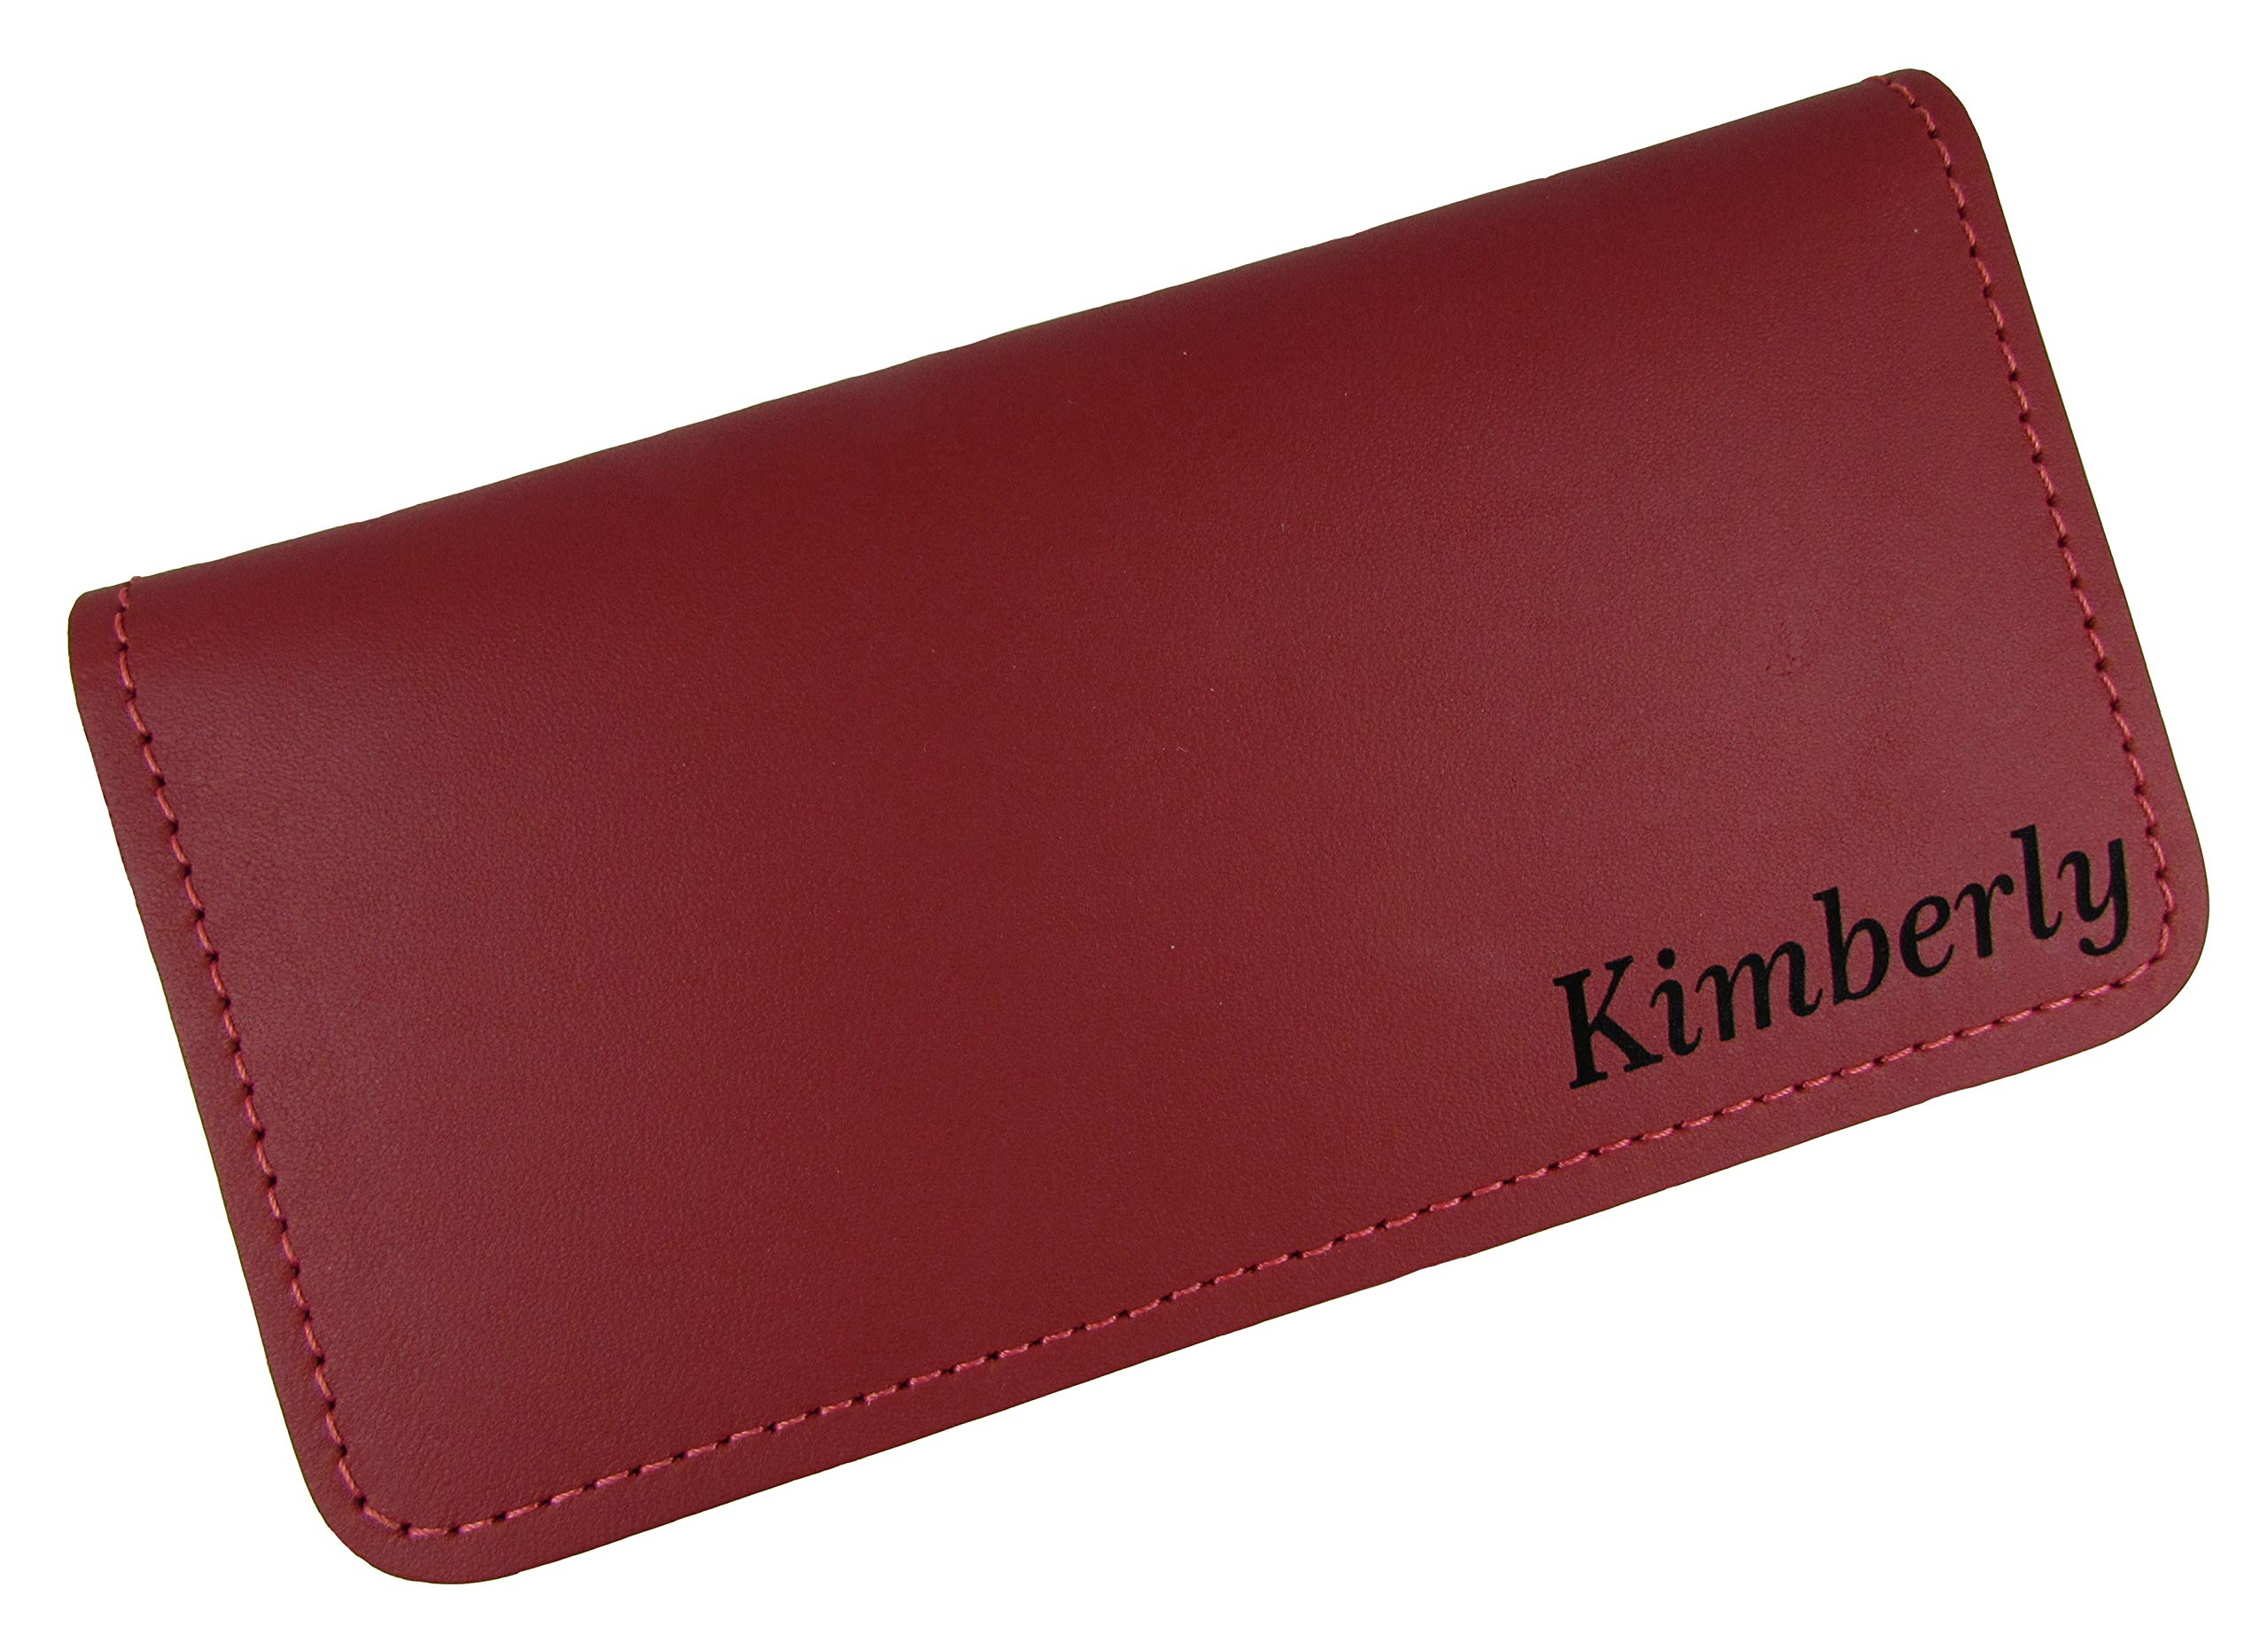 Personalized Name or Monogram Leather Checkbook Cover, USA Made Red